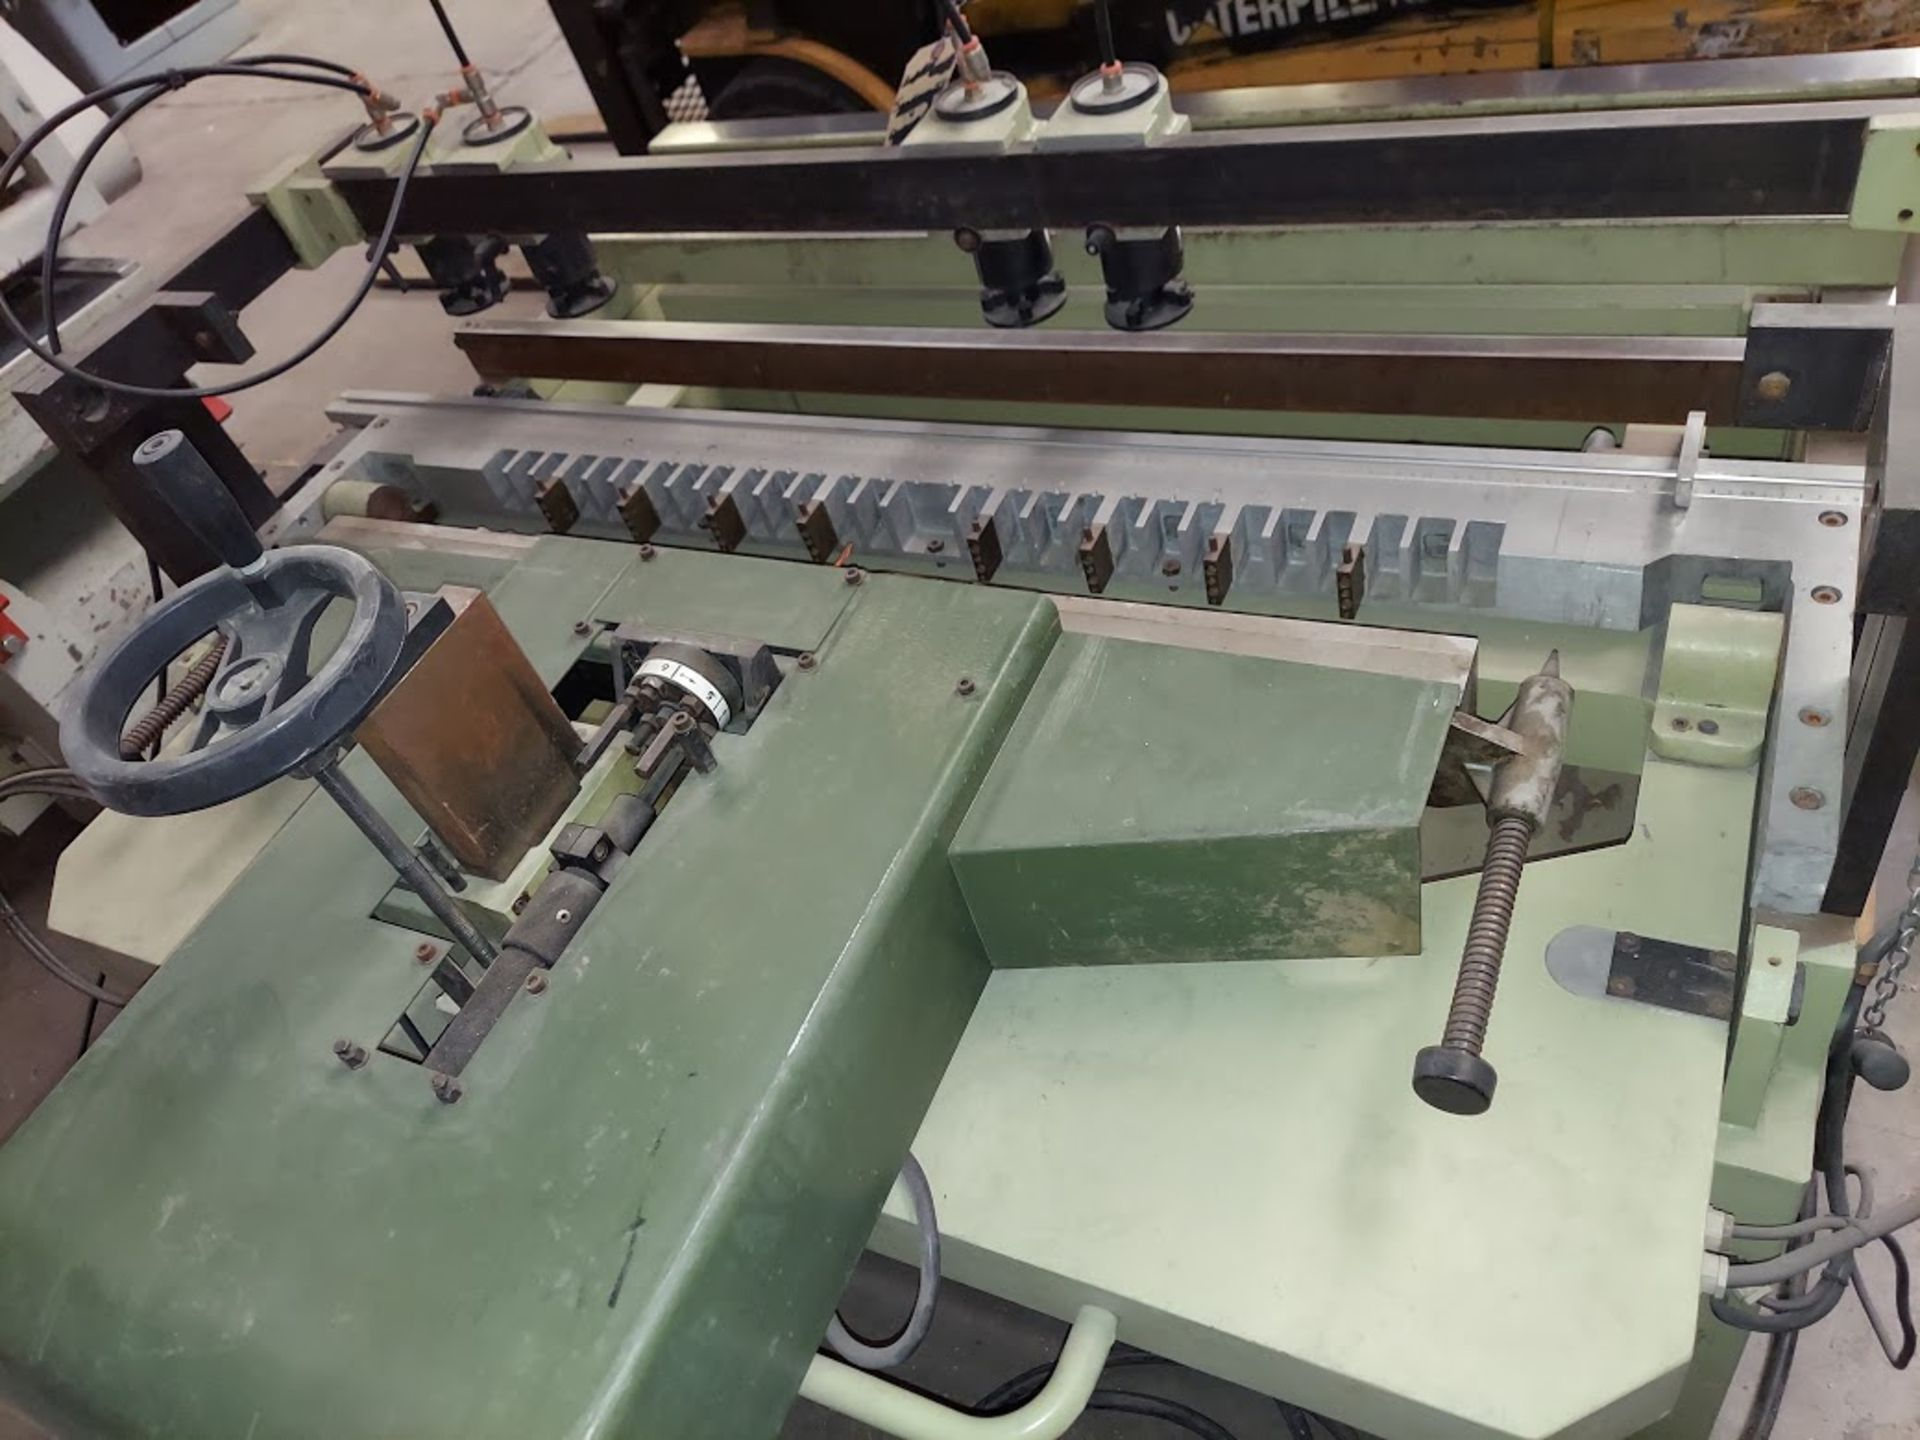 SCMI Construction Line Boring Machine, Model #MB29, 29 Spindles, 230 Volts 3 Phase - Image 3 of 6